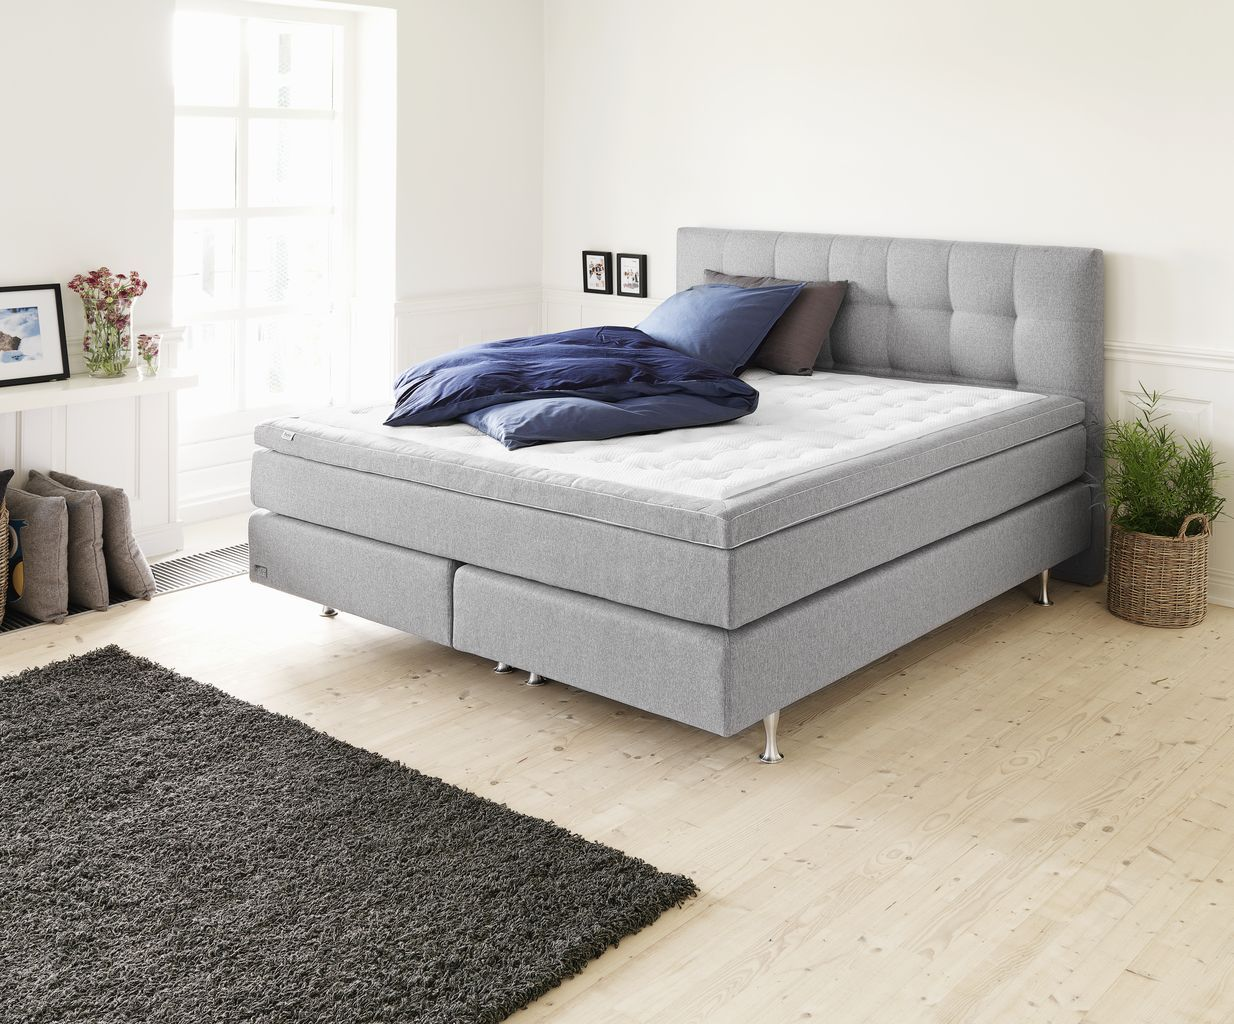 Boxspring 180x200 Boxspring 180x200 HØie 200 Bedroom Pinterest Bedrooms And Doors